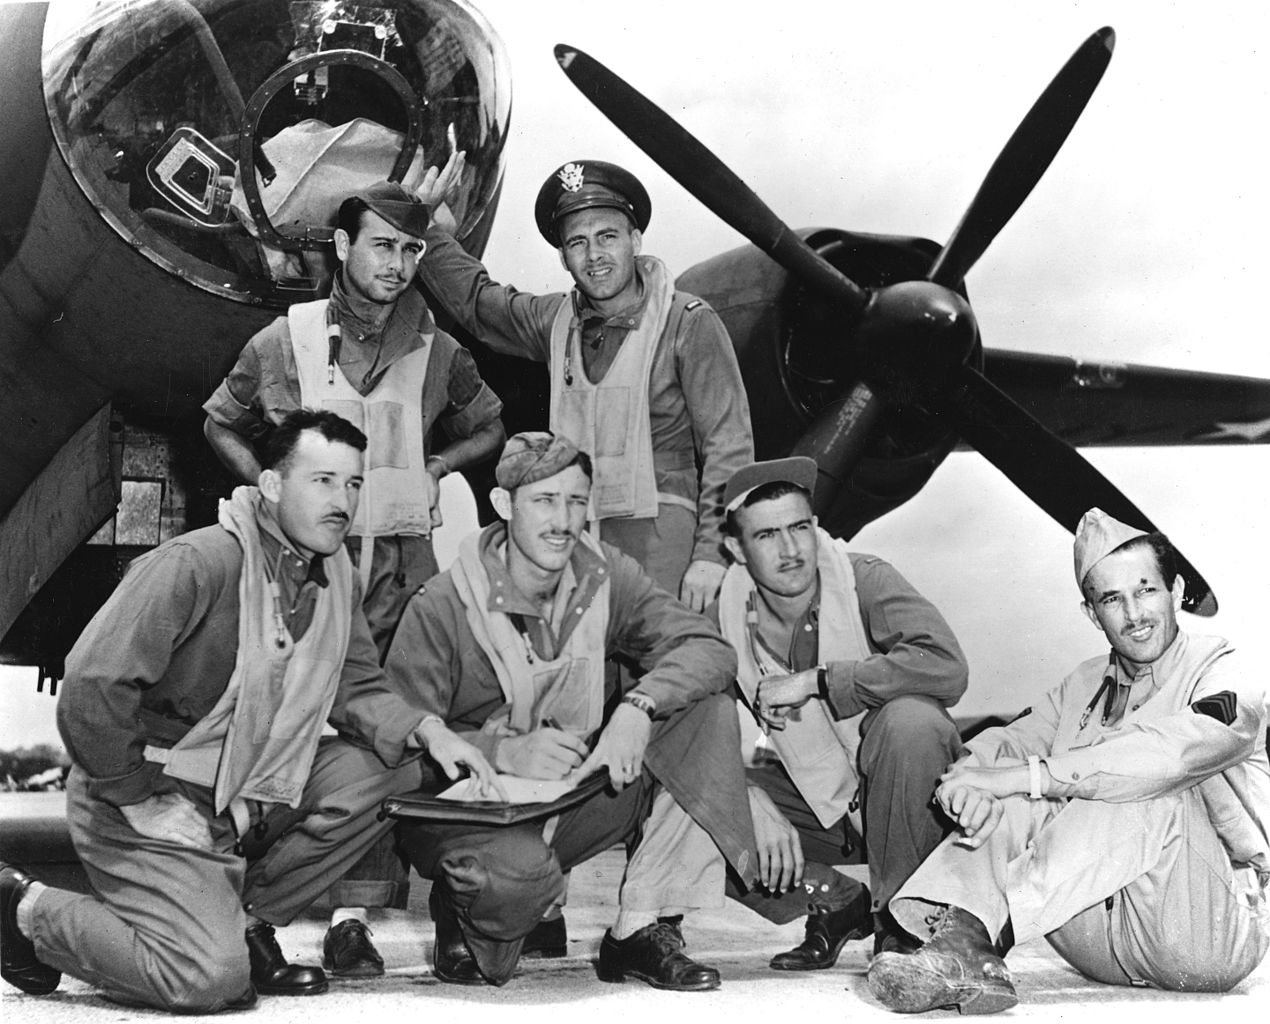 The Story of James P. Muri, the B-26 pilot who buzzed the flight deck of Japanese Aircraft Carrier Akagi during the Battle of Midway to save his crew